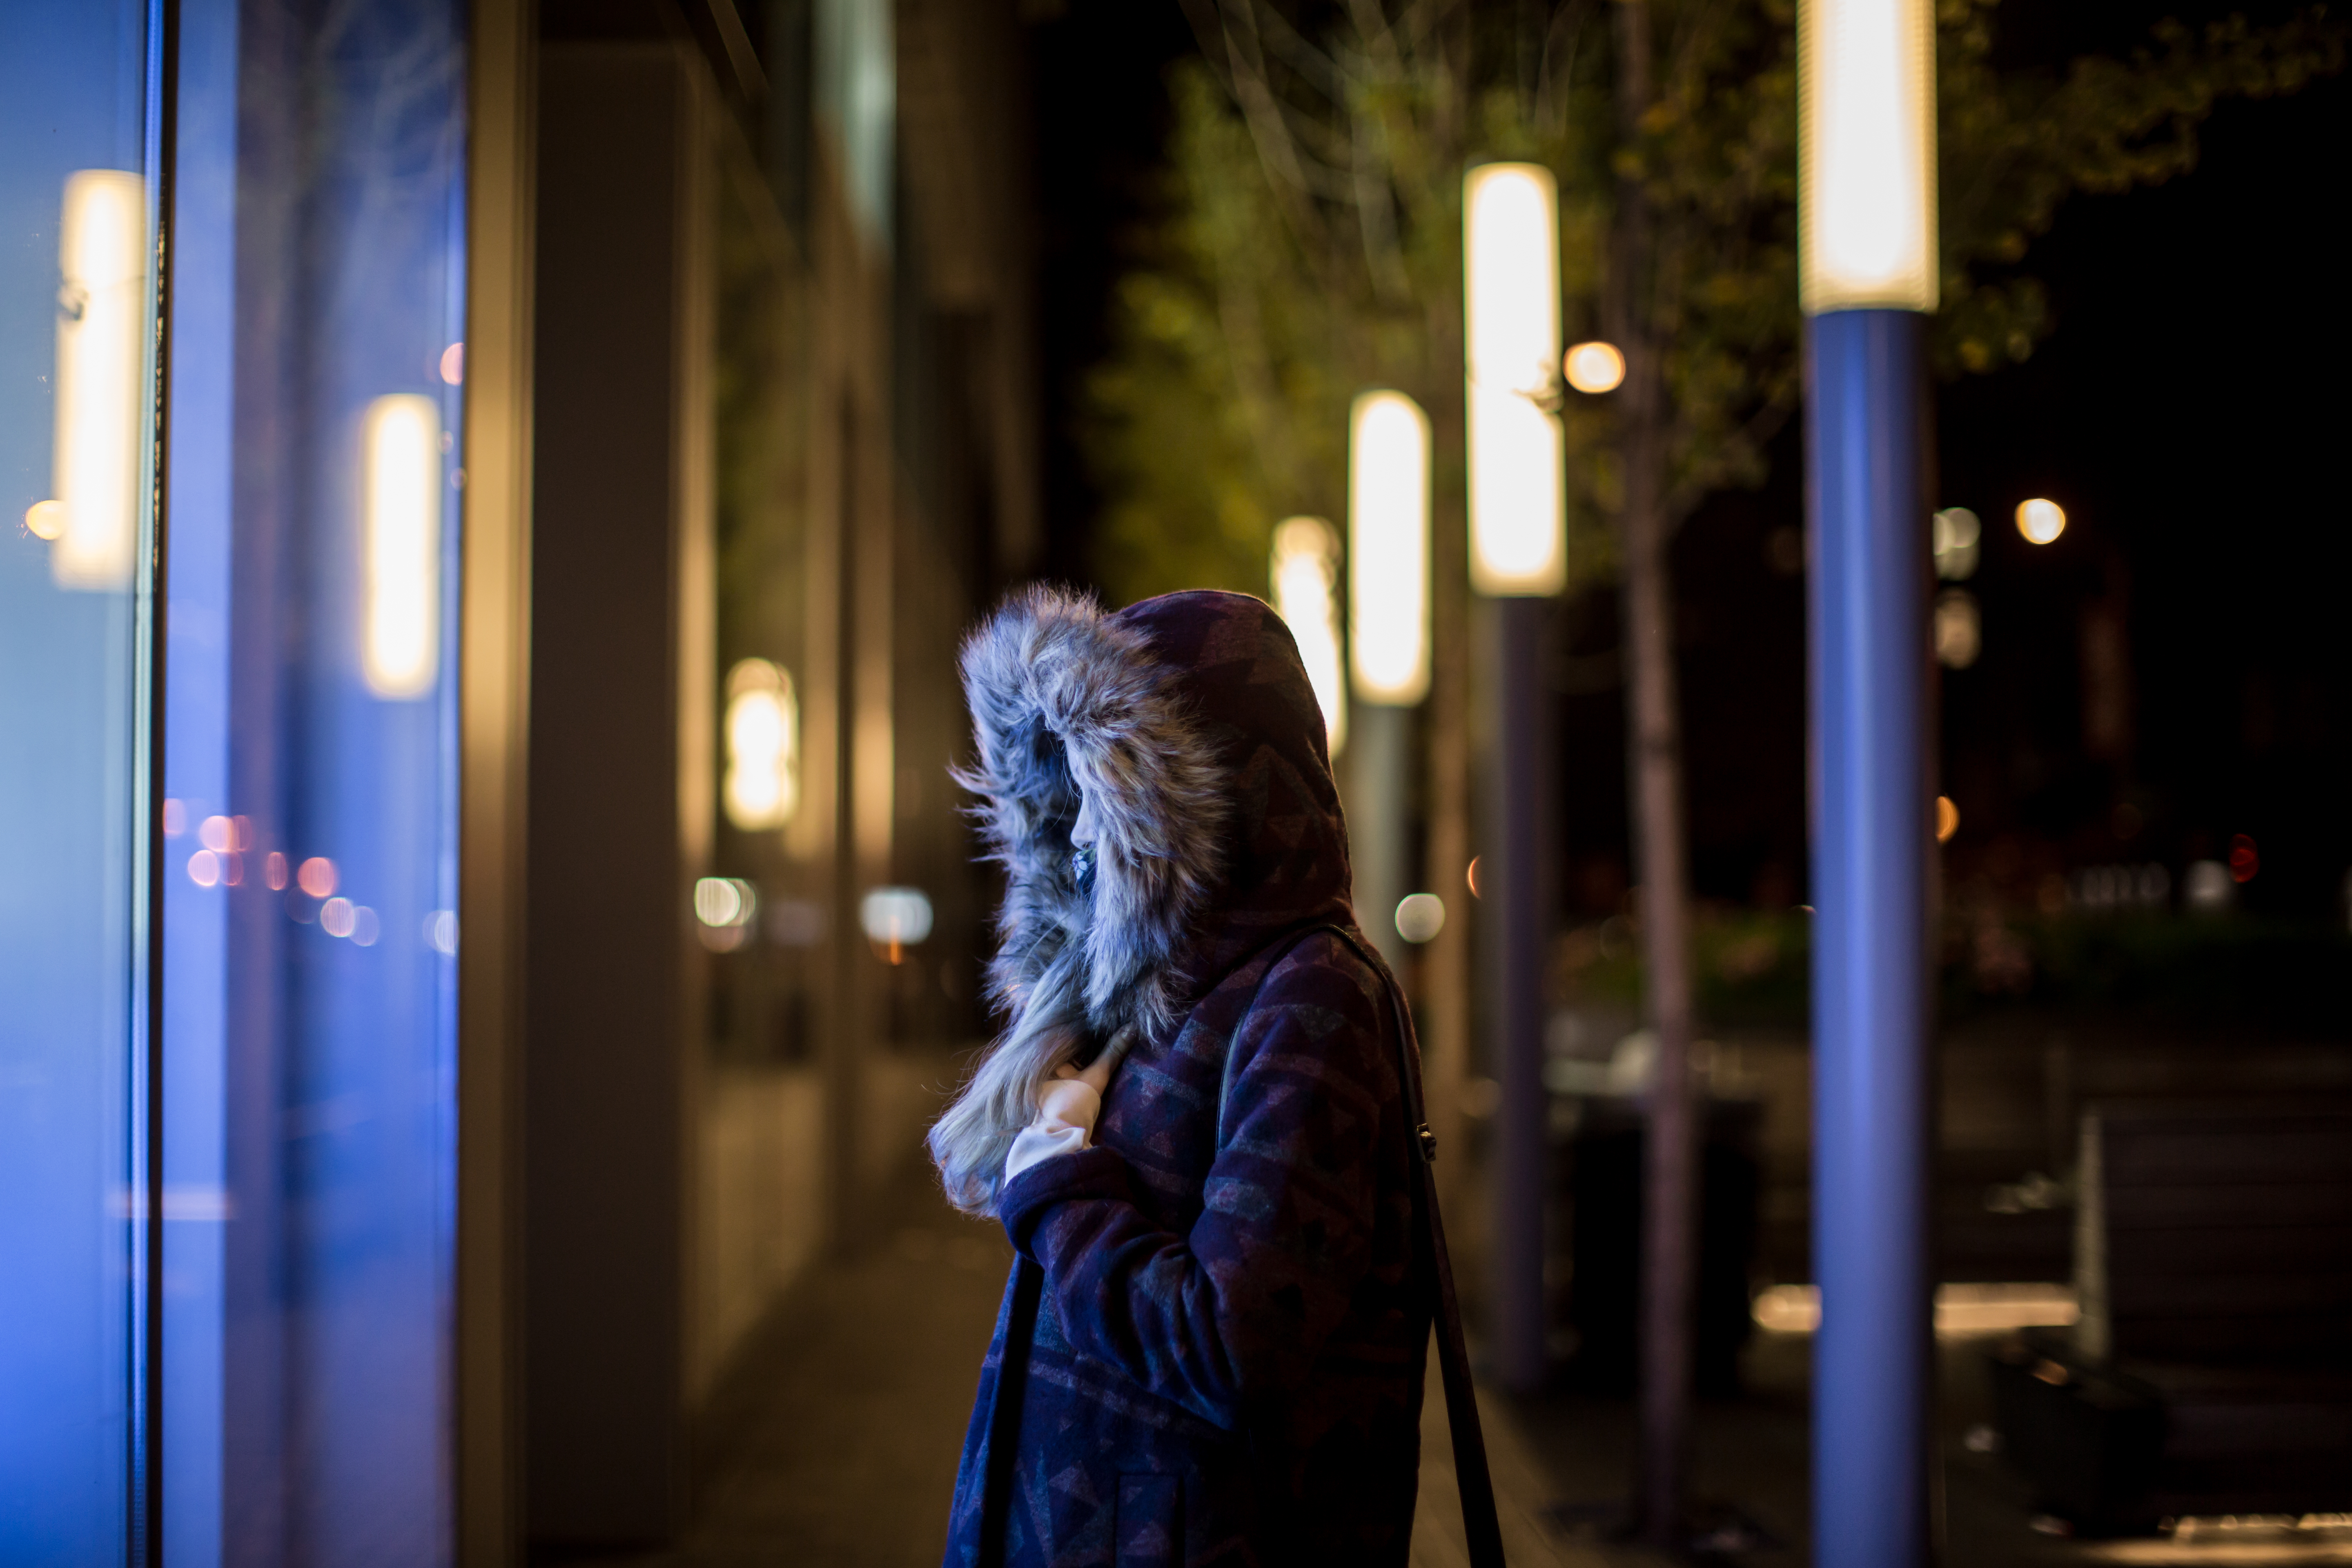 Girl on a cold night in city example image 1